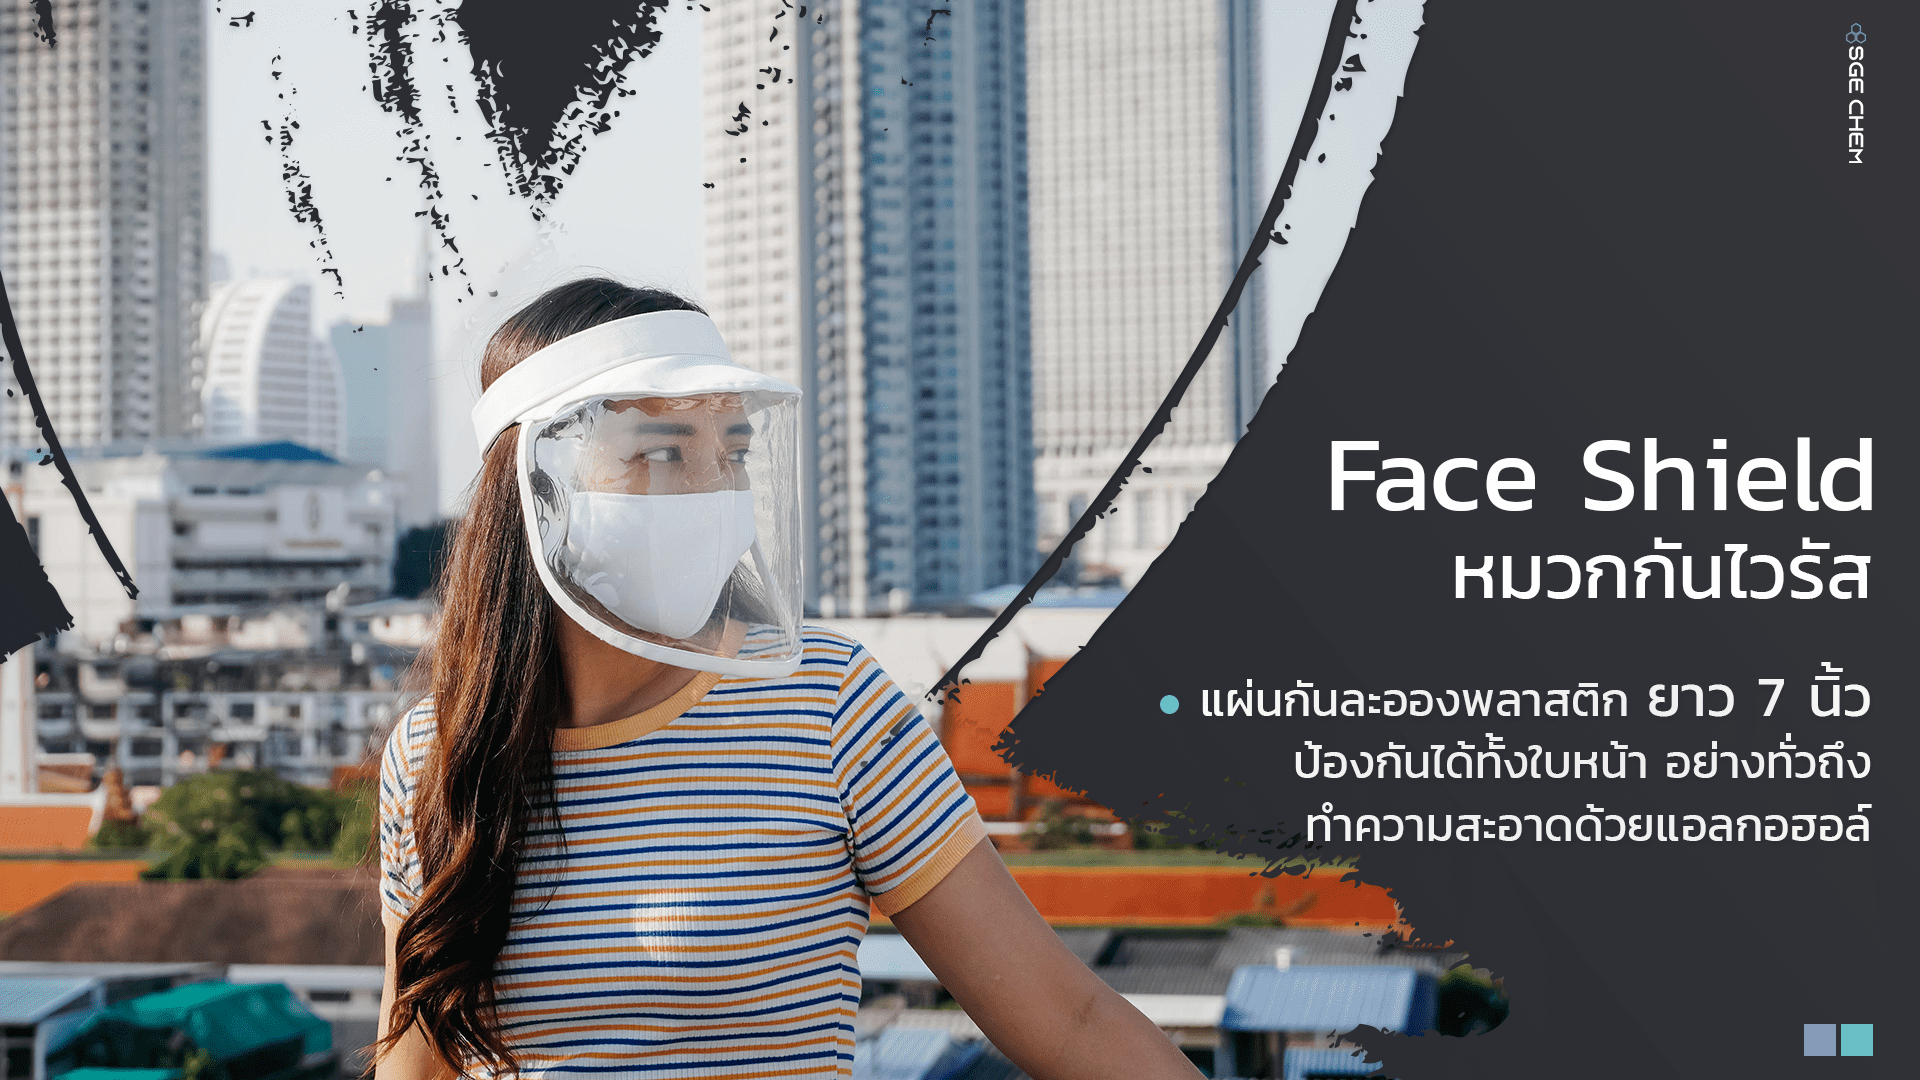 Face Shield -head